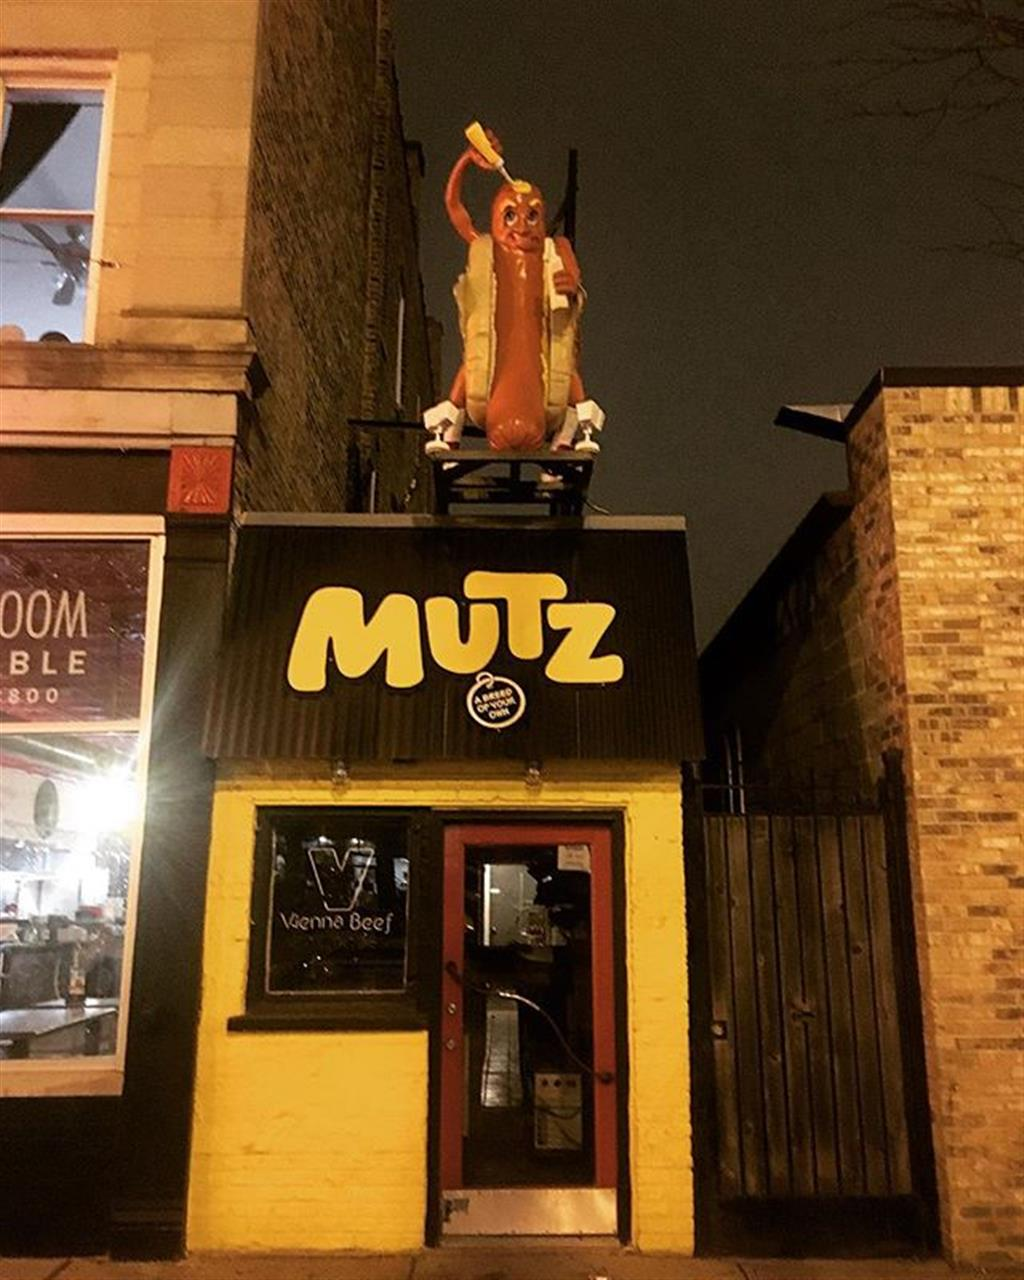 Like any good Chicago style hotdog is, the mascot atop #MutzChicago is a @viennabeef with #mustard only. #chicagostylehotdog #chicagohotdog #eatlocal #bairdwarner #leadingrelocal #hotdog #hotdogstand #wickerpark